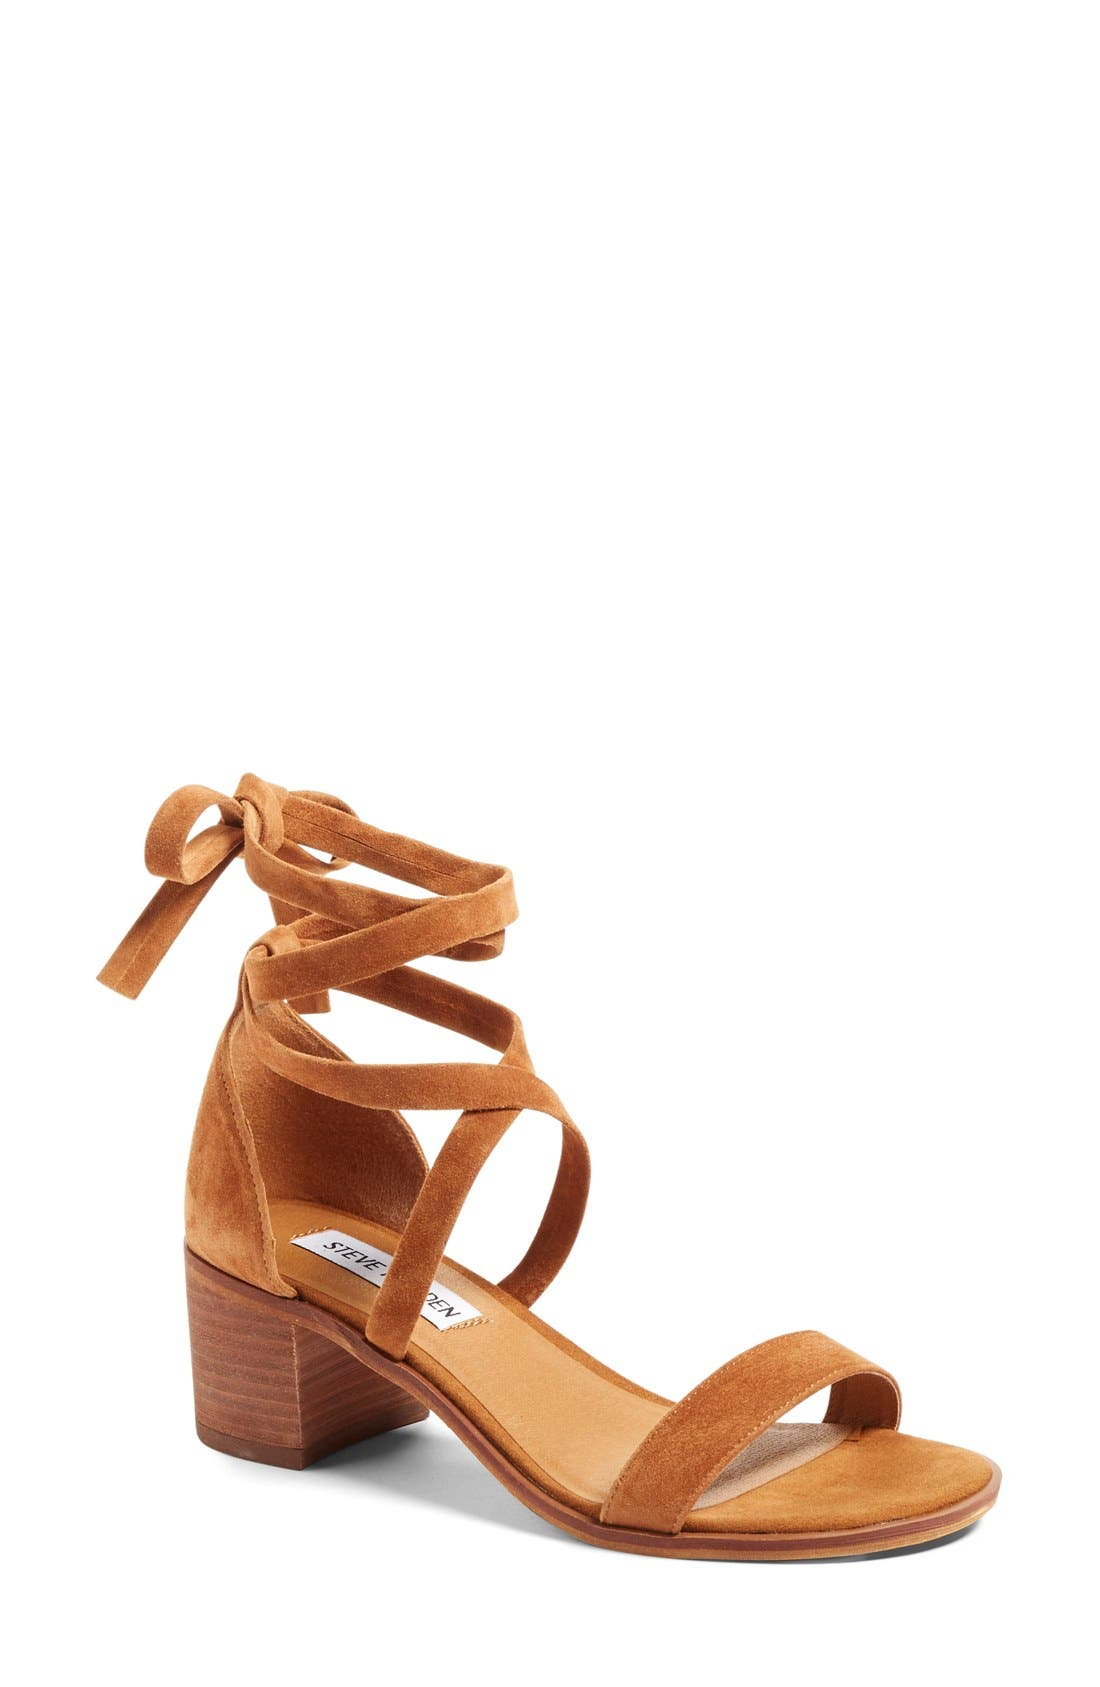 'Rizzaa' Ankle Strap Sandal,                             Main thumbnail 1, color,                             200